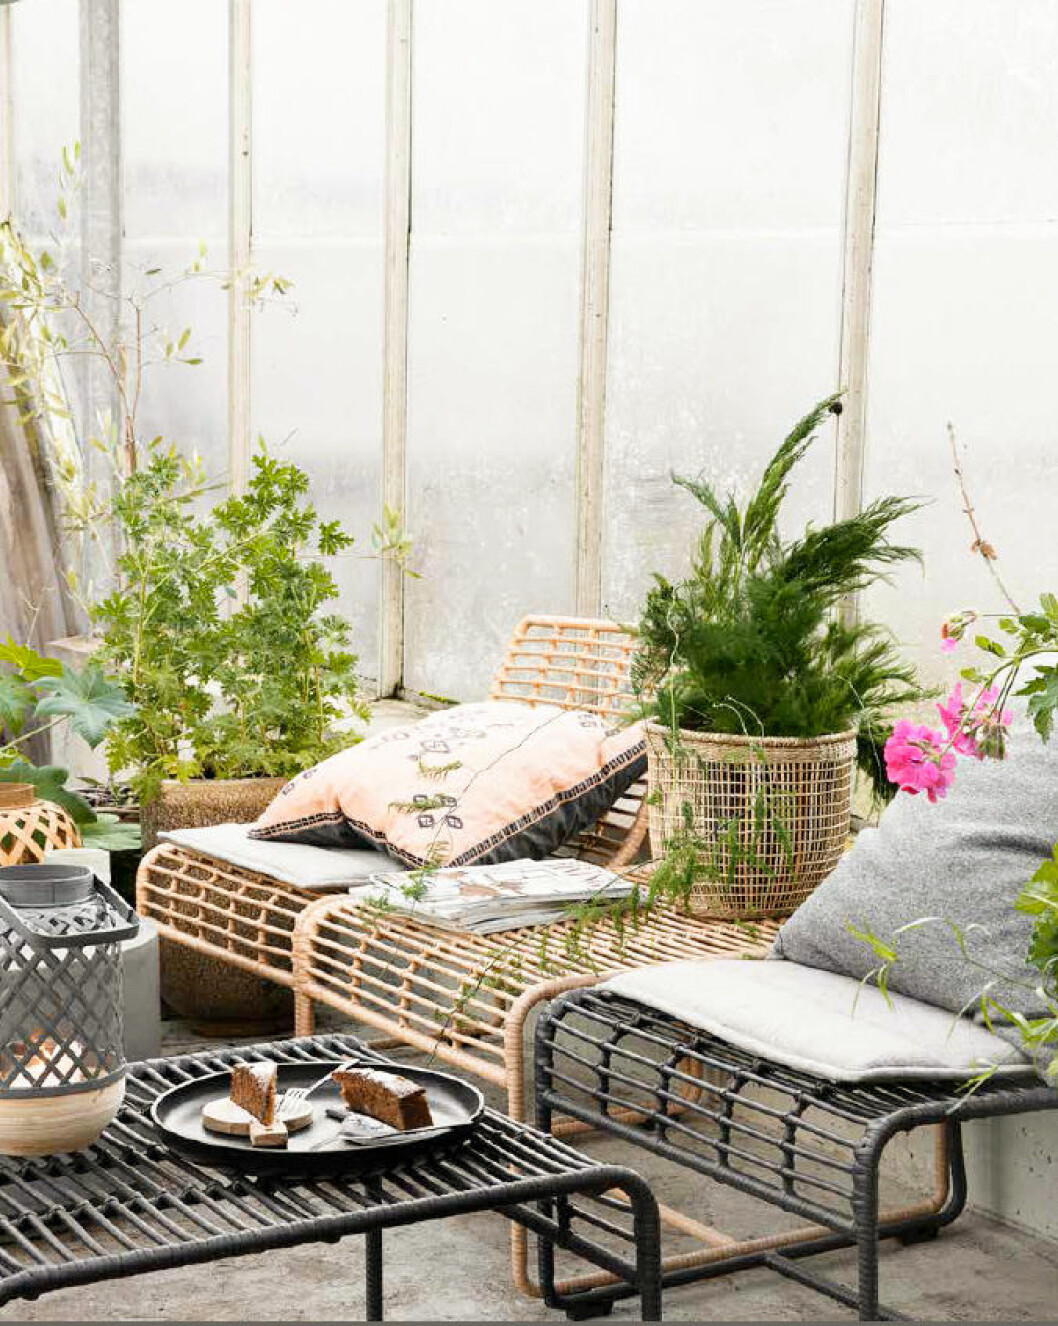 Rattan chairs at the balcony with pillows and plants. Outdoor furniture from House doctor.